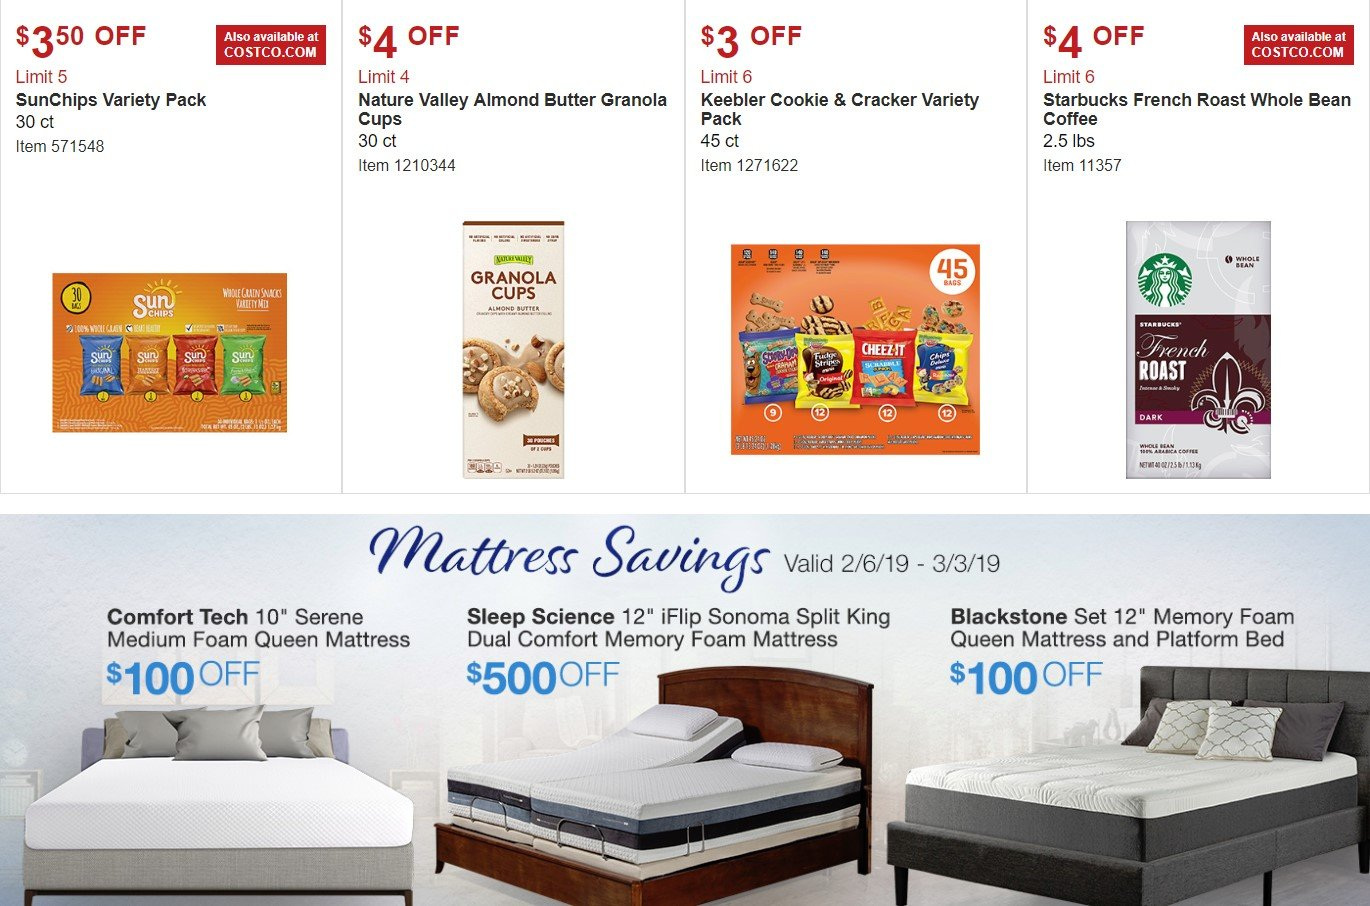 Costco Flyer - 02.06.2019 - 03.03.2019 - Sales products - bed, butter, coffee, foam, granola, mattress, memory foam, sonoma, starbucks, cracker. Page 9.